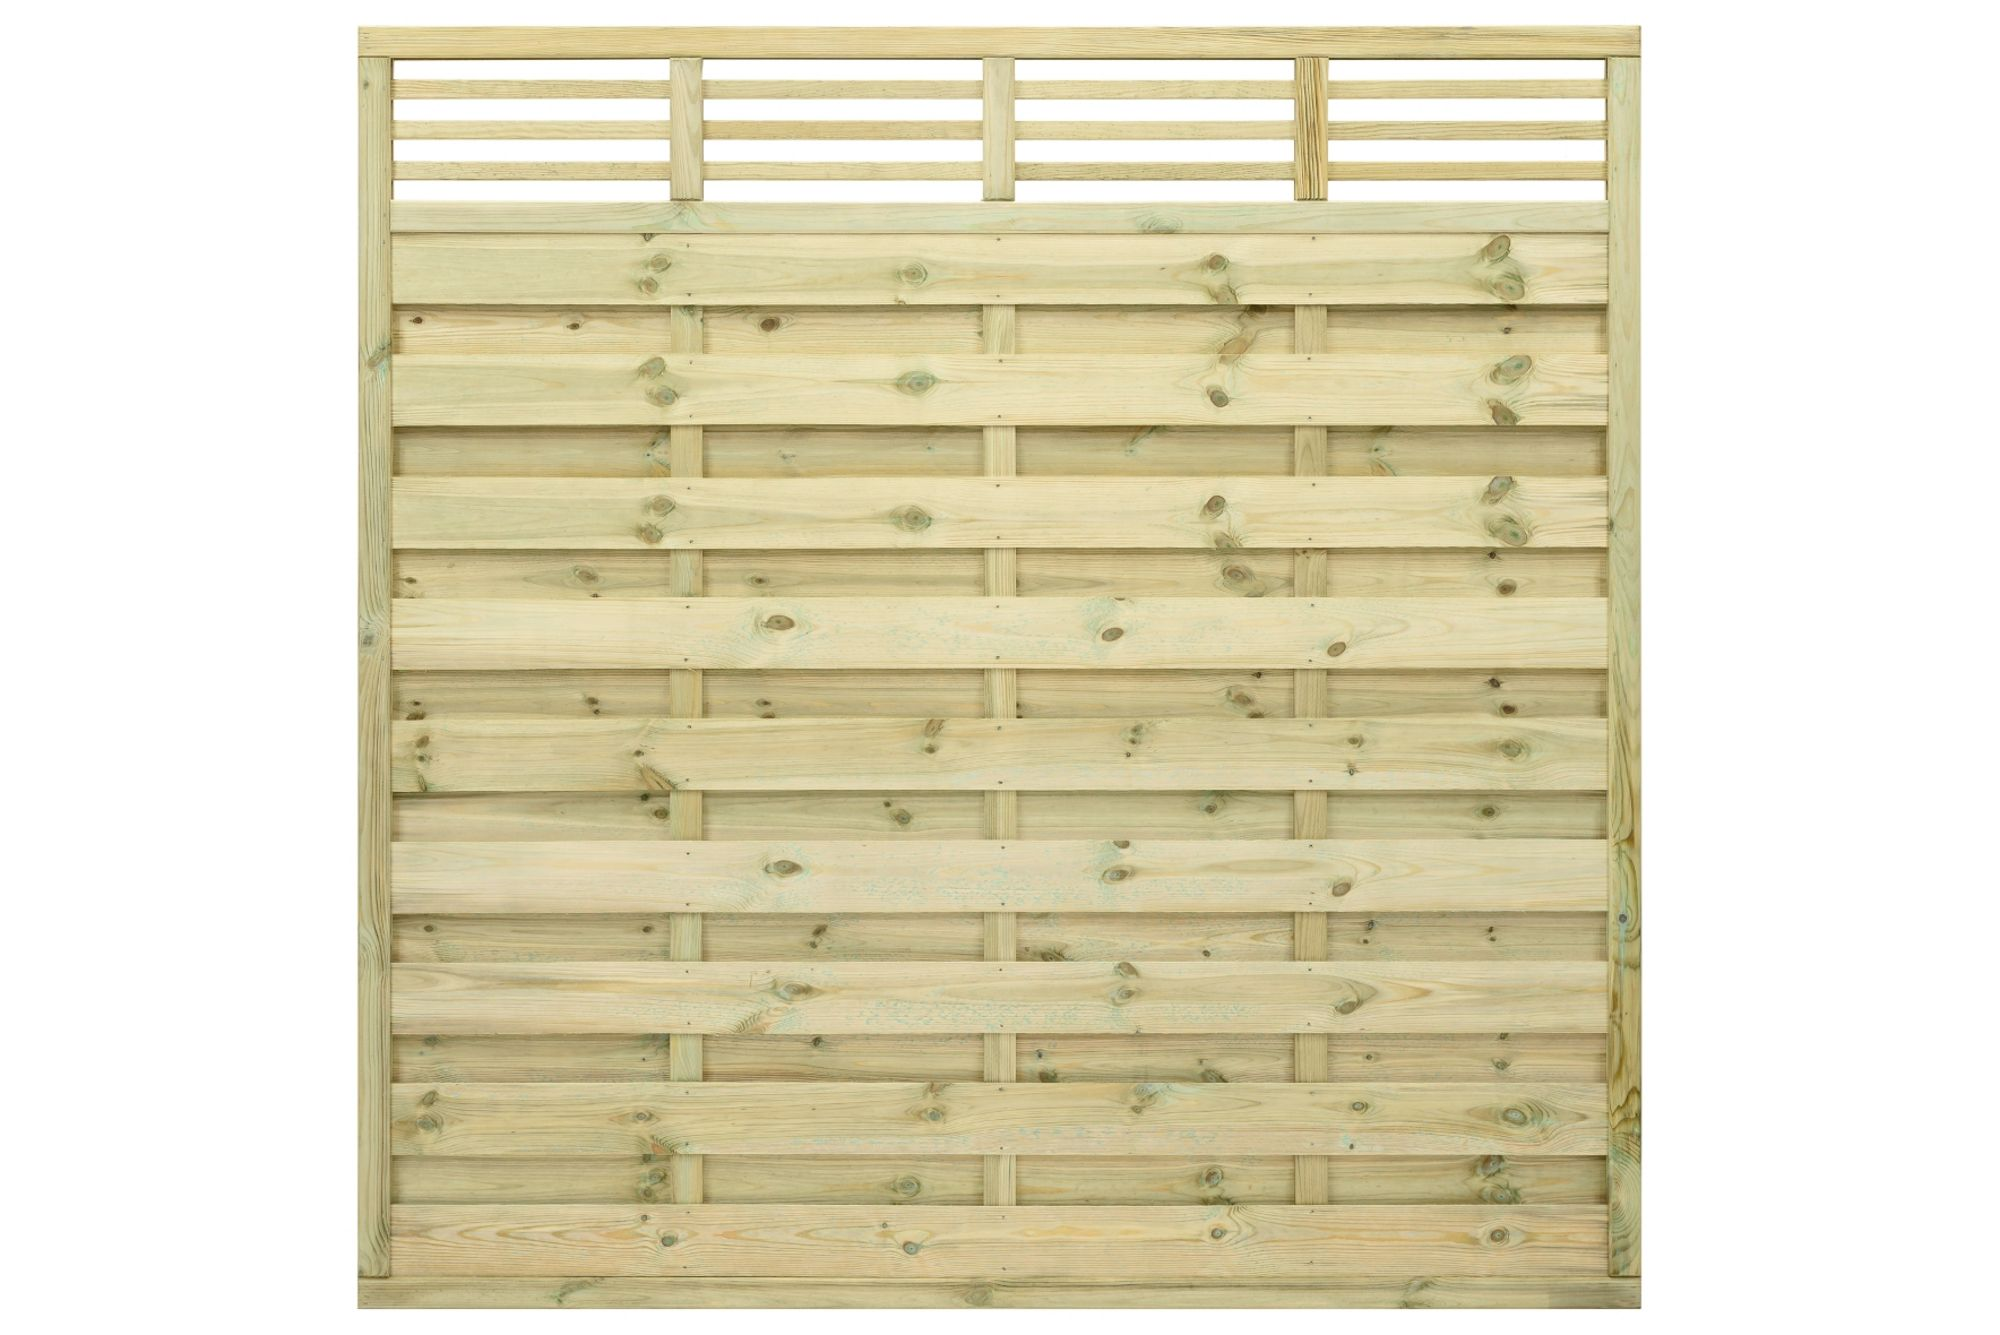 Grange Lille Decorative Horizontal Trellis Fence Panel (w)1.8 M (h)1.8m, Pack Of 5